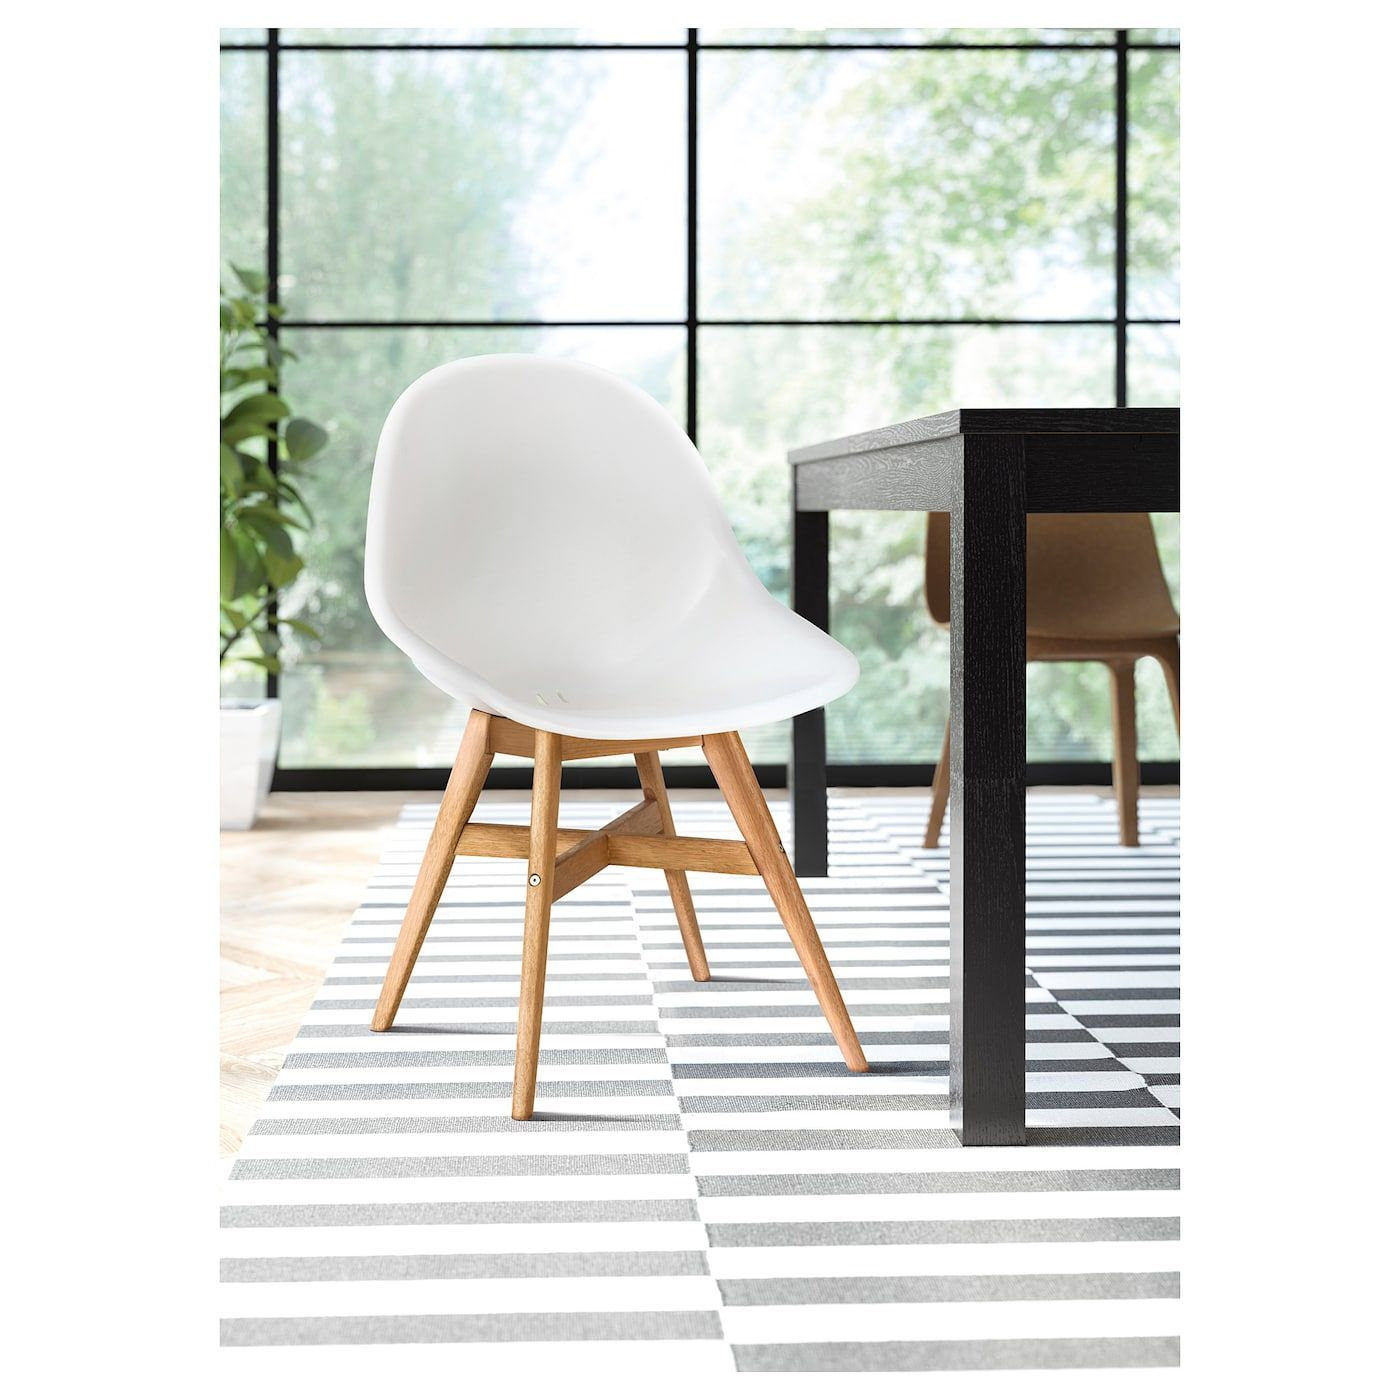 FANBYN Chair white (With images) Dining chair